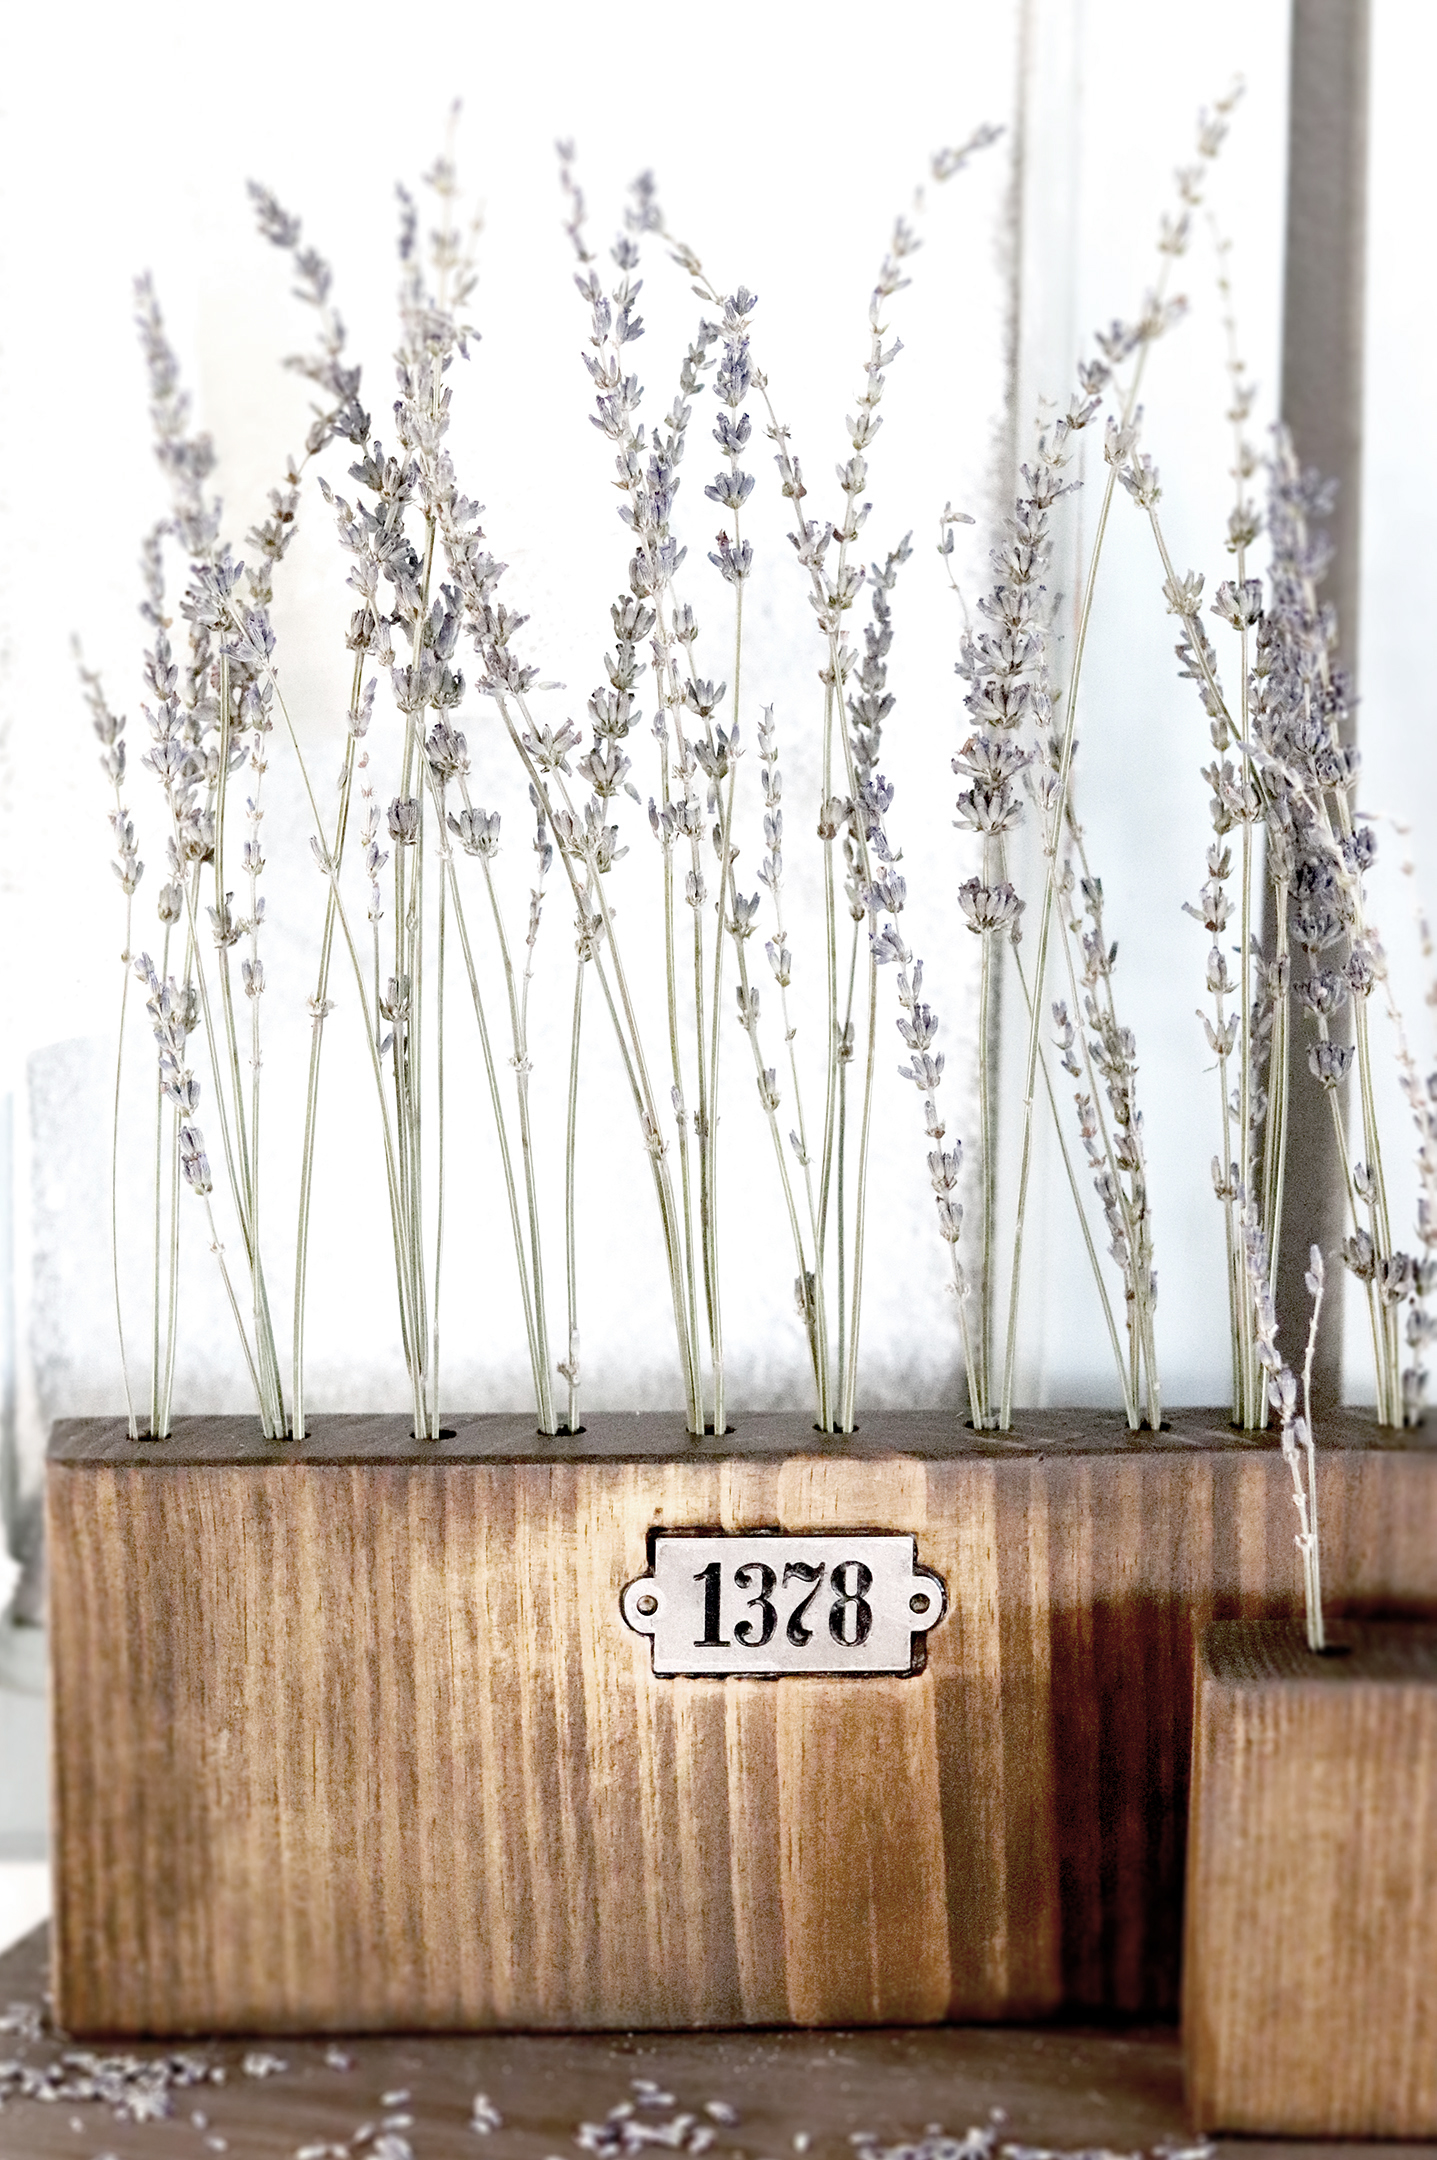 Boroughfare Home Vintage Home Decor of Lavender Wood and Metal